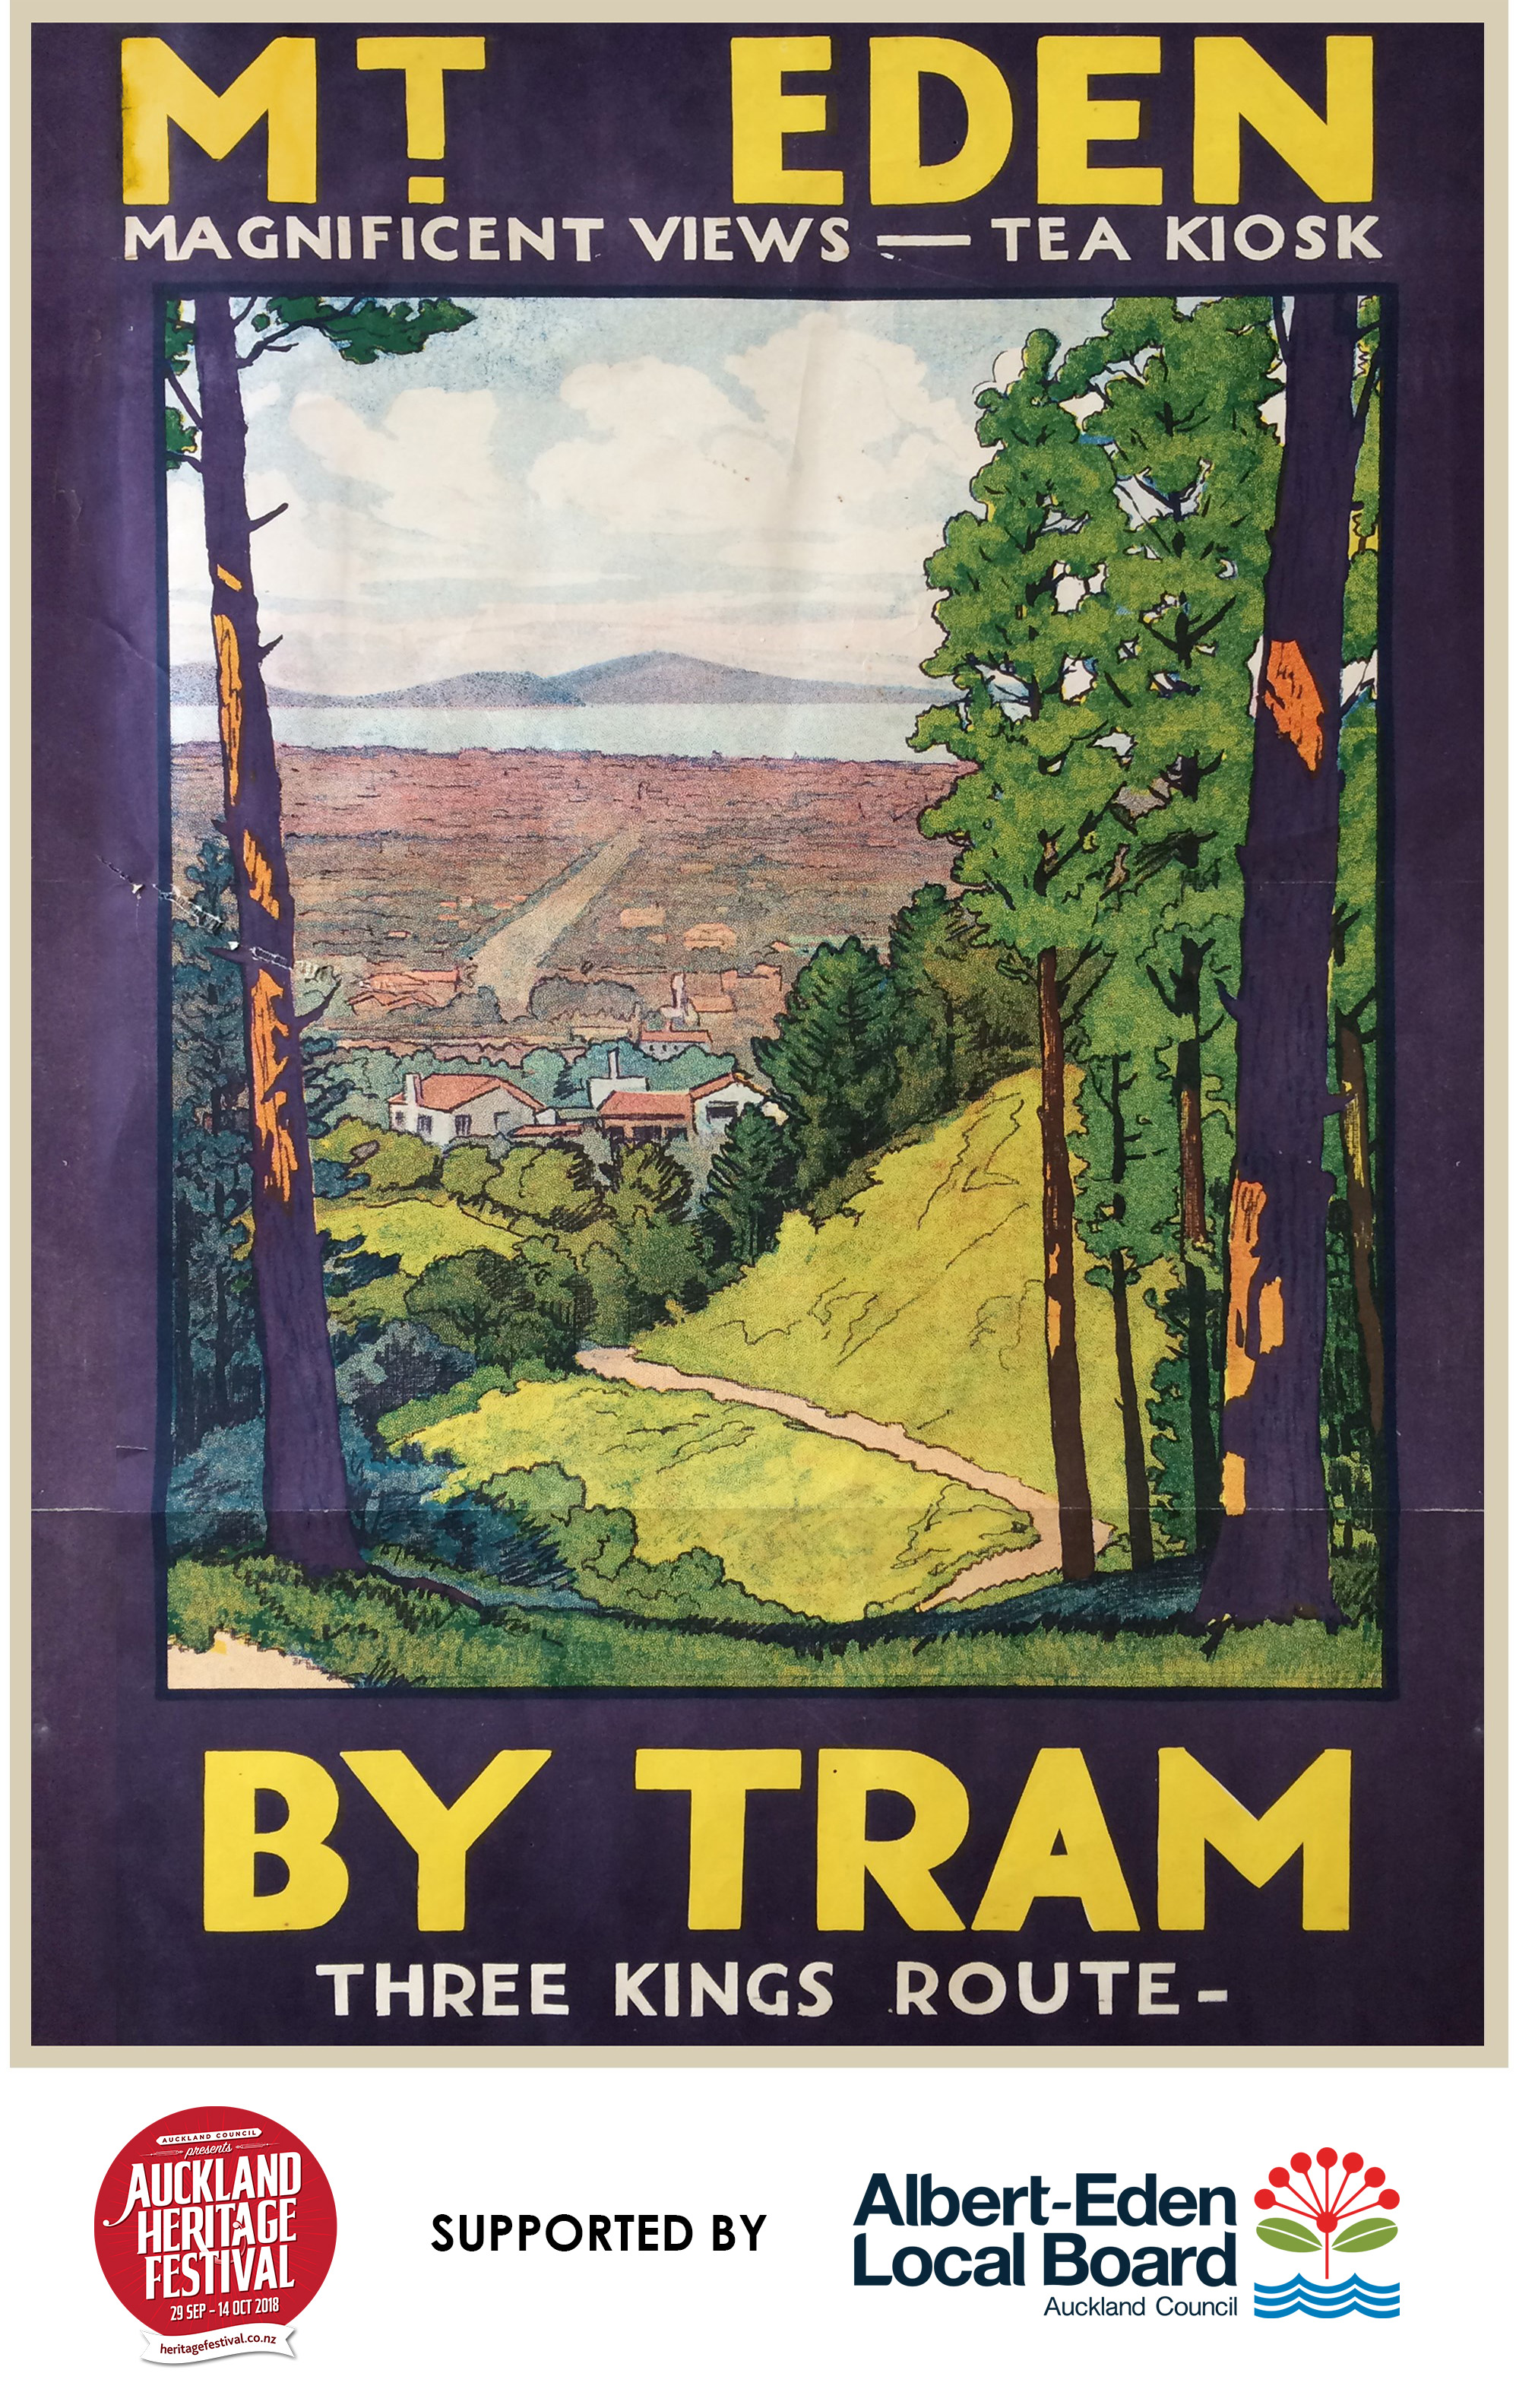 179 - Mt Eden by Tram Heritage Exhibition and Mixed Media Support.jpg